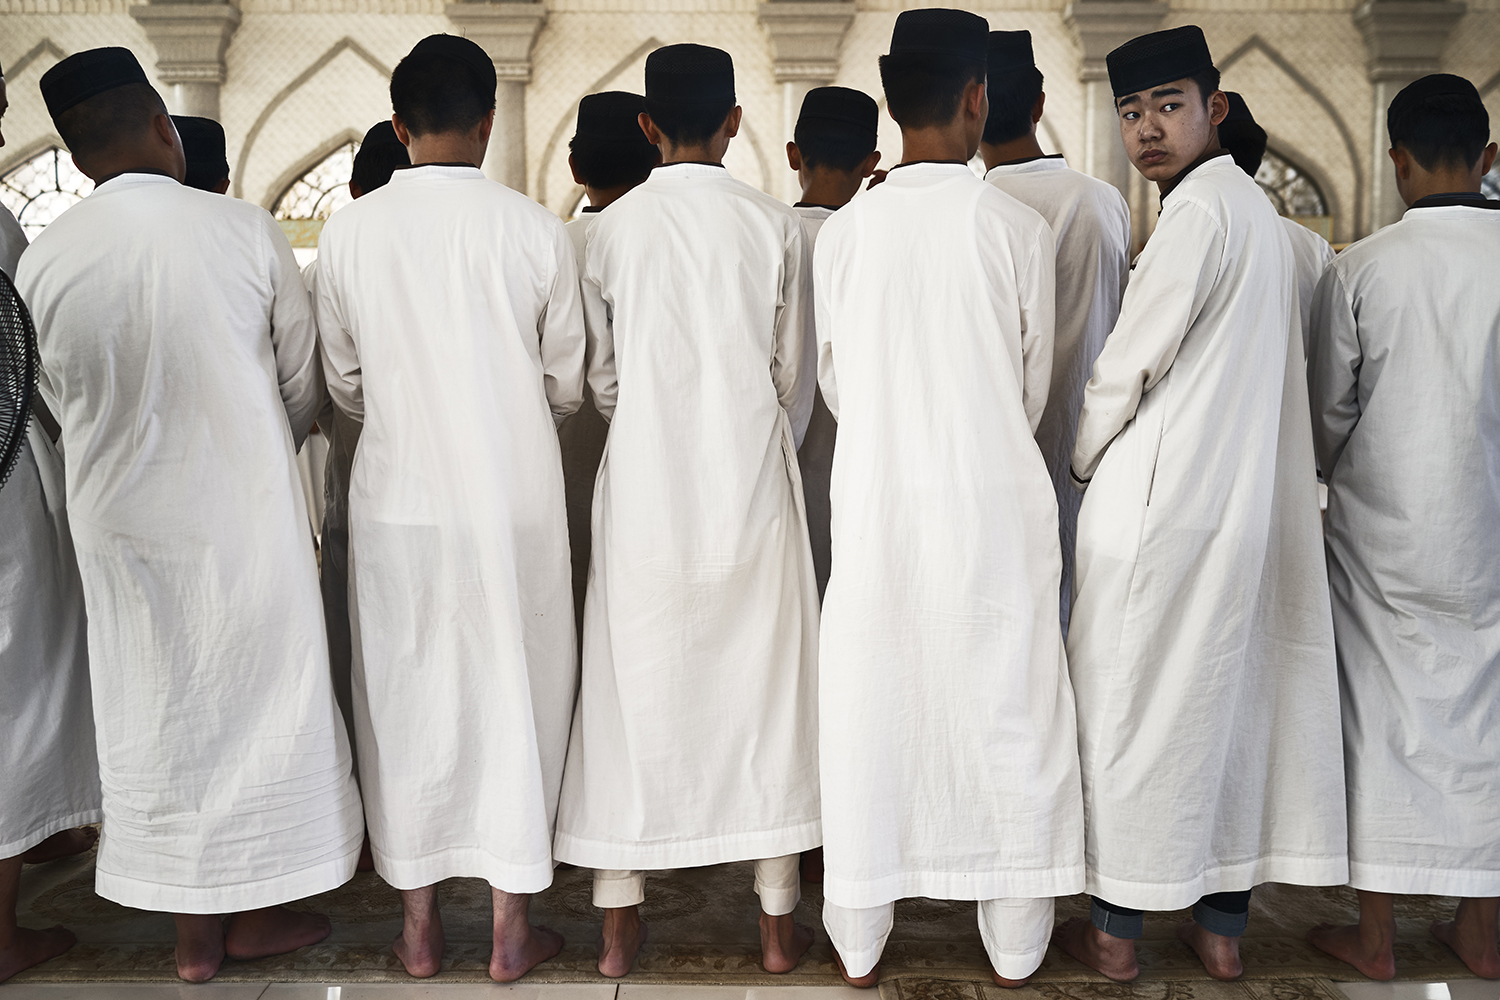 """Li Ya'nan, """"Another 'Freedom' For Young Chinese Muslims"""""""